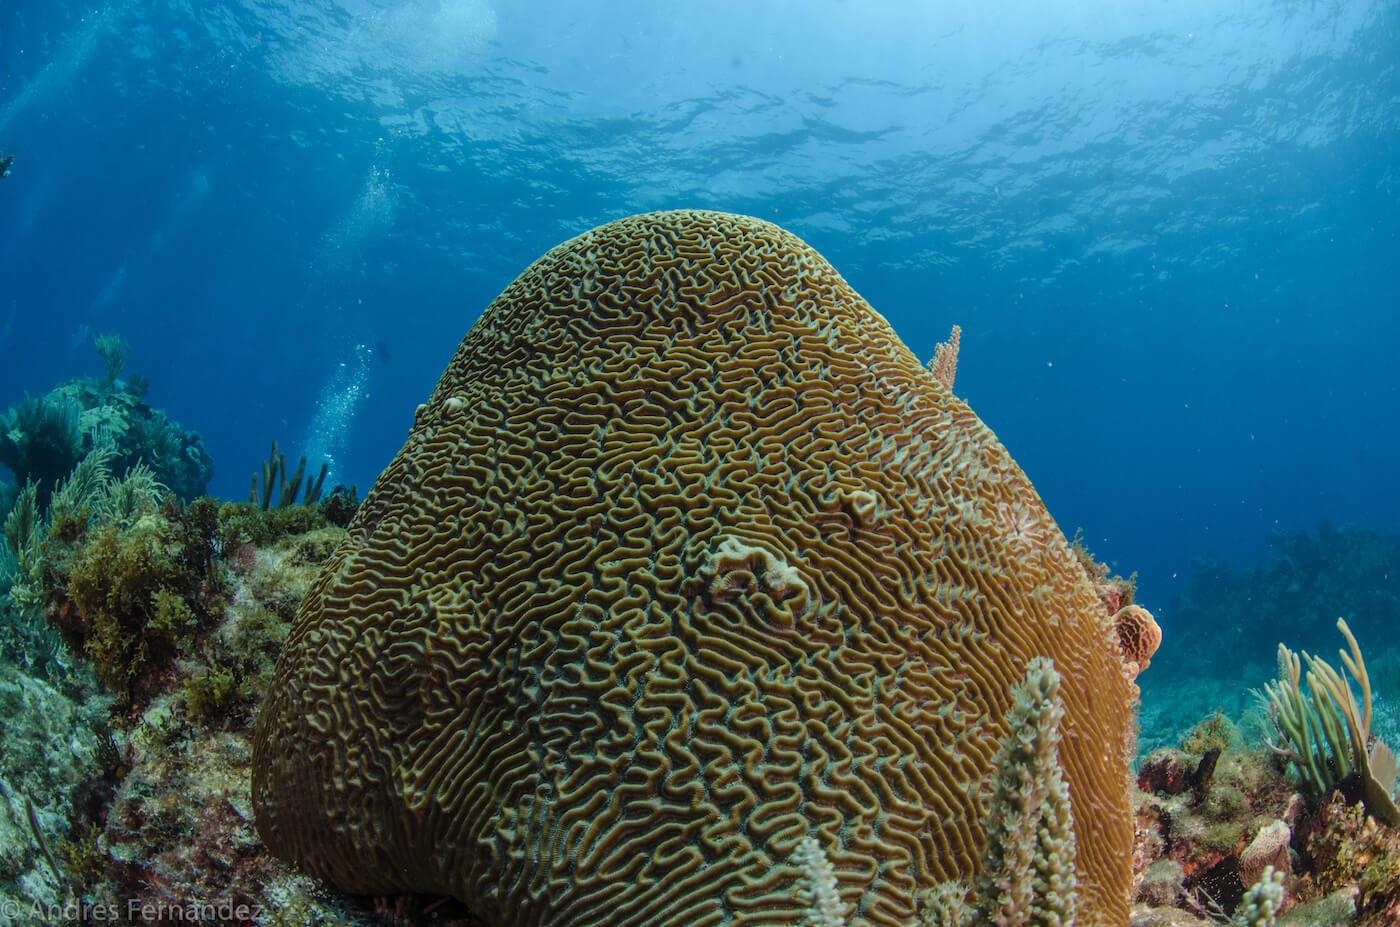 Isla Mujeres Coral Reefs Squalo Adventures Scuba Diving Snorkeling-35